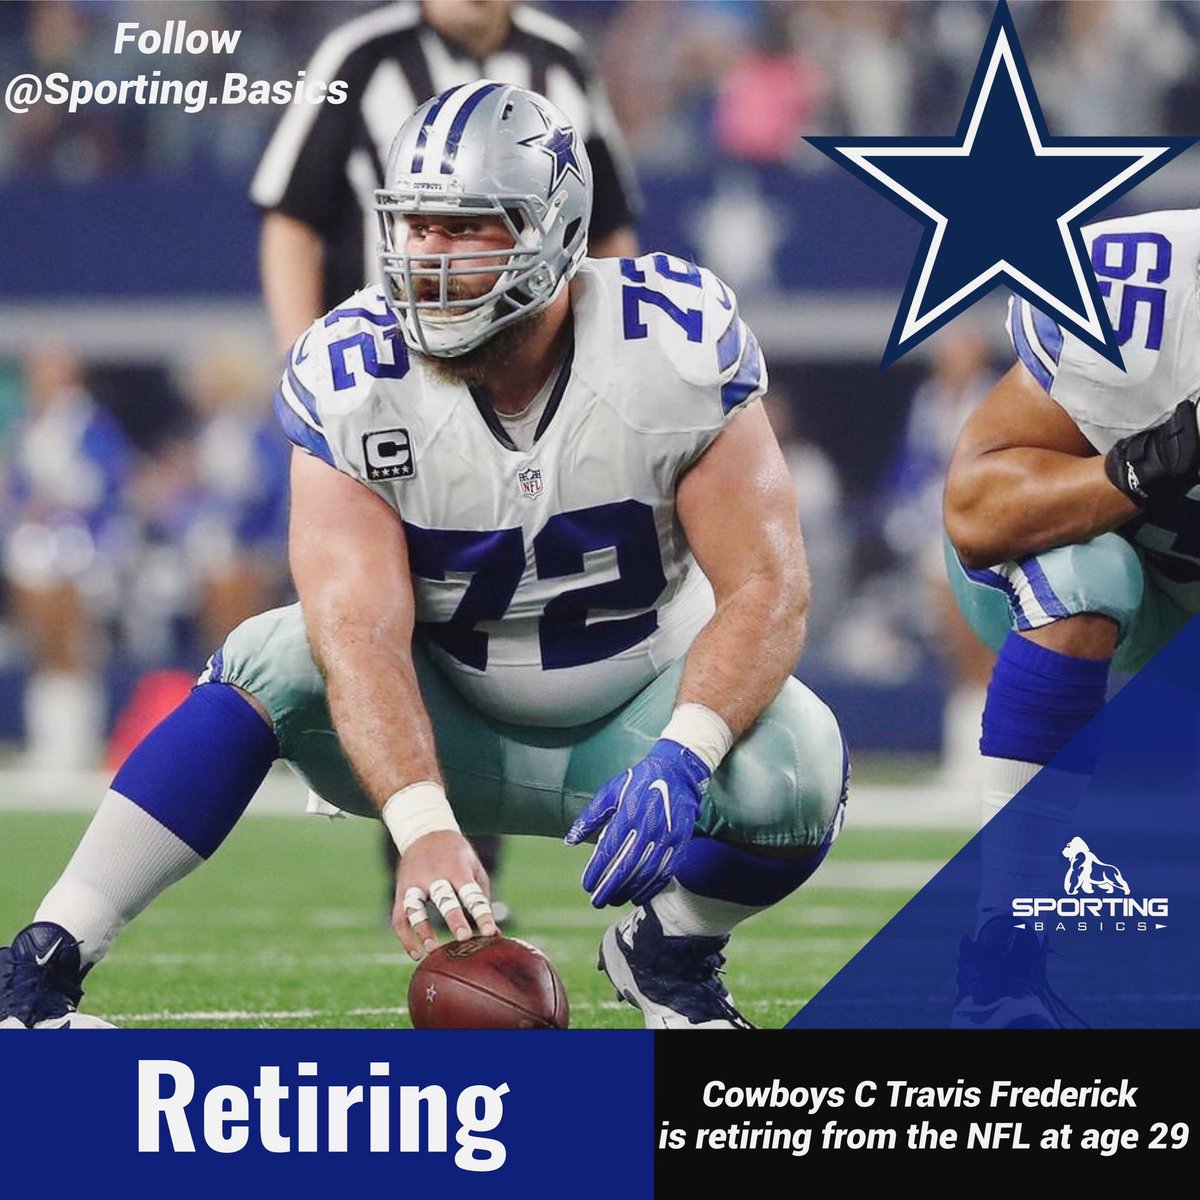 Cowboys C Travis Frederick is retiring from the NFL at age 29  -Follow me for more #americanfootball #nfl #football #sports #touchdown #sport #superbowl #nflnews #collegefootball #gfl #nflfootball #footballamericano #ers #dallas #americanfootballplayer #travisfrederickpic.twitter.com/Vjvbb1E1Rn